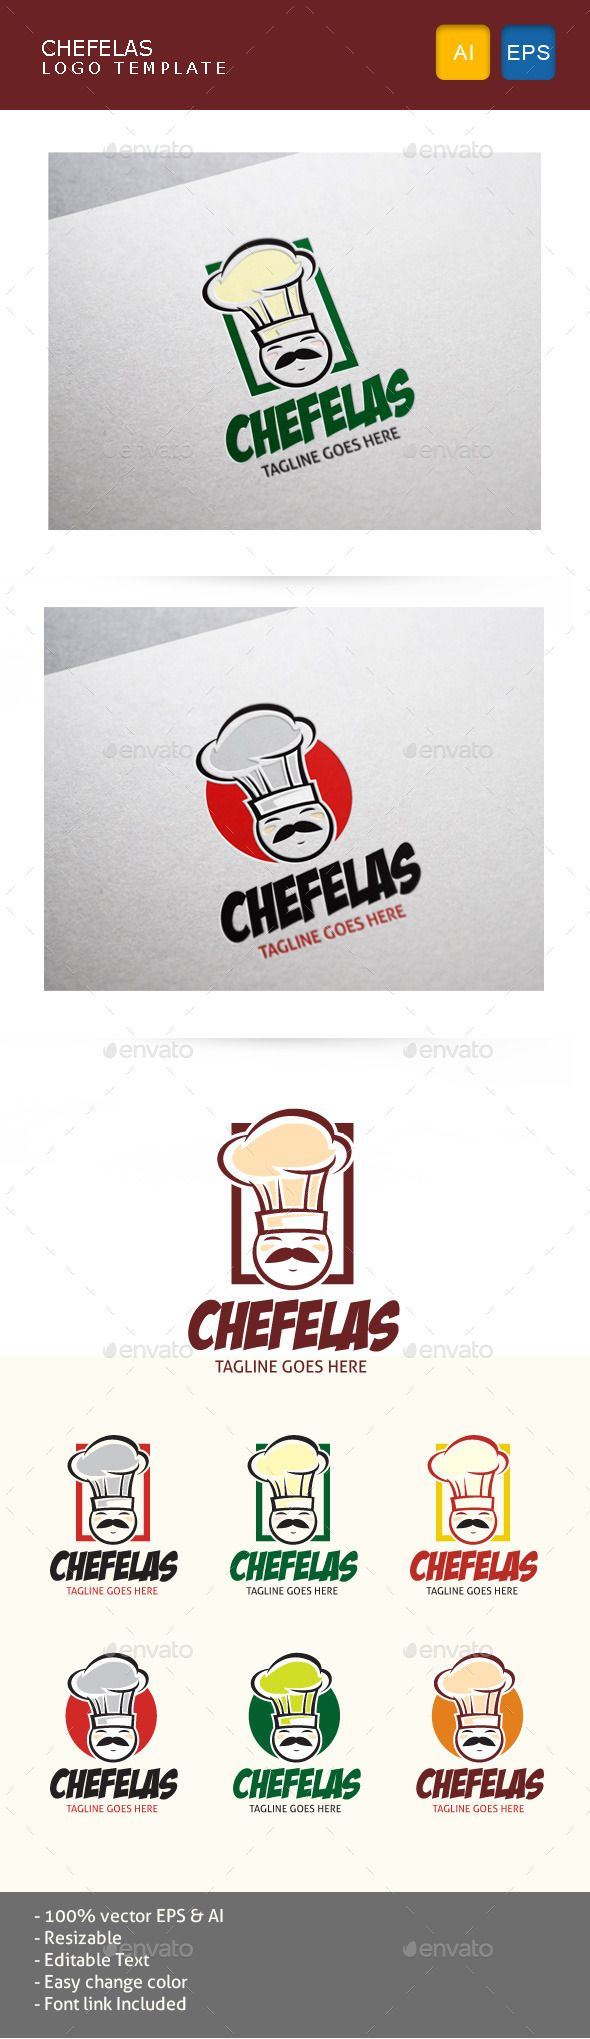 Chef character logo for food, restaurant, and any cooking busines related.  Provide in